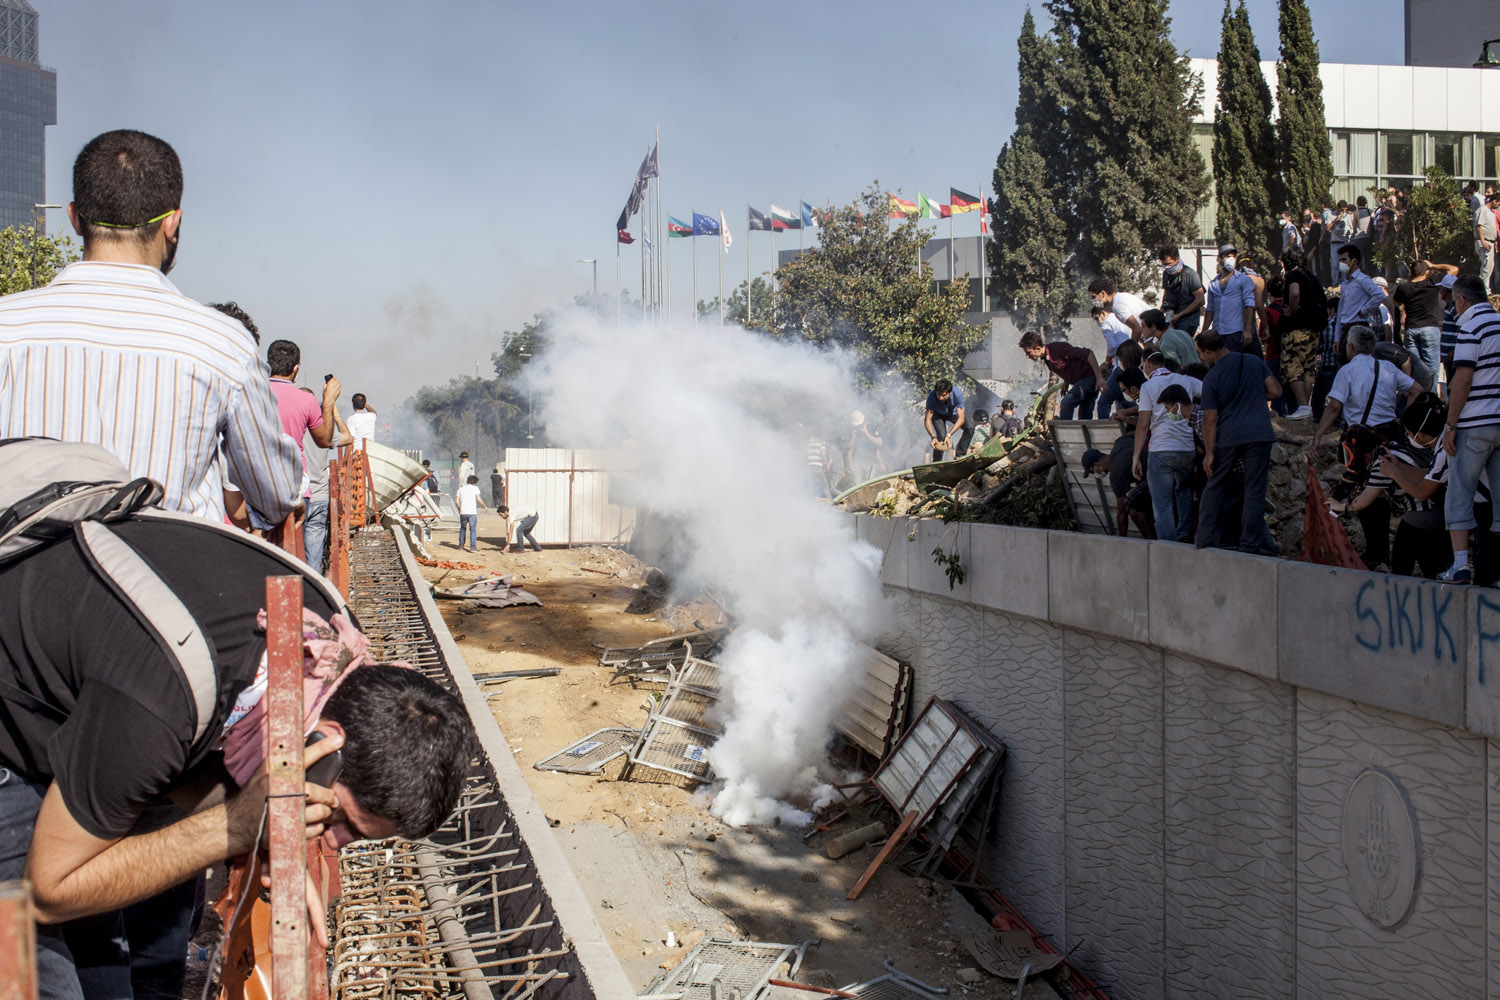 A tear gas round lands in the construction site of  the propsed mall, mosque and shopping complex in the Gezi Park area of Istanbul as thousands of protesters attempt to get to the area.